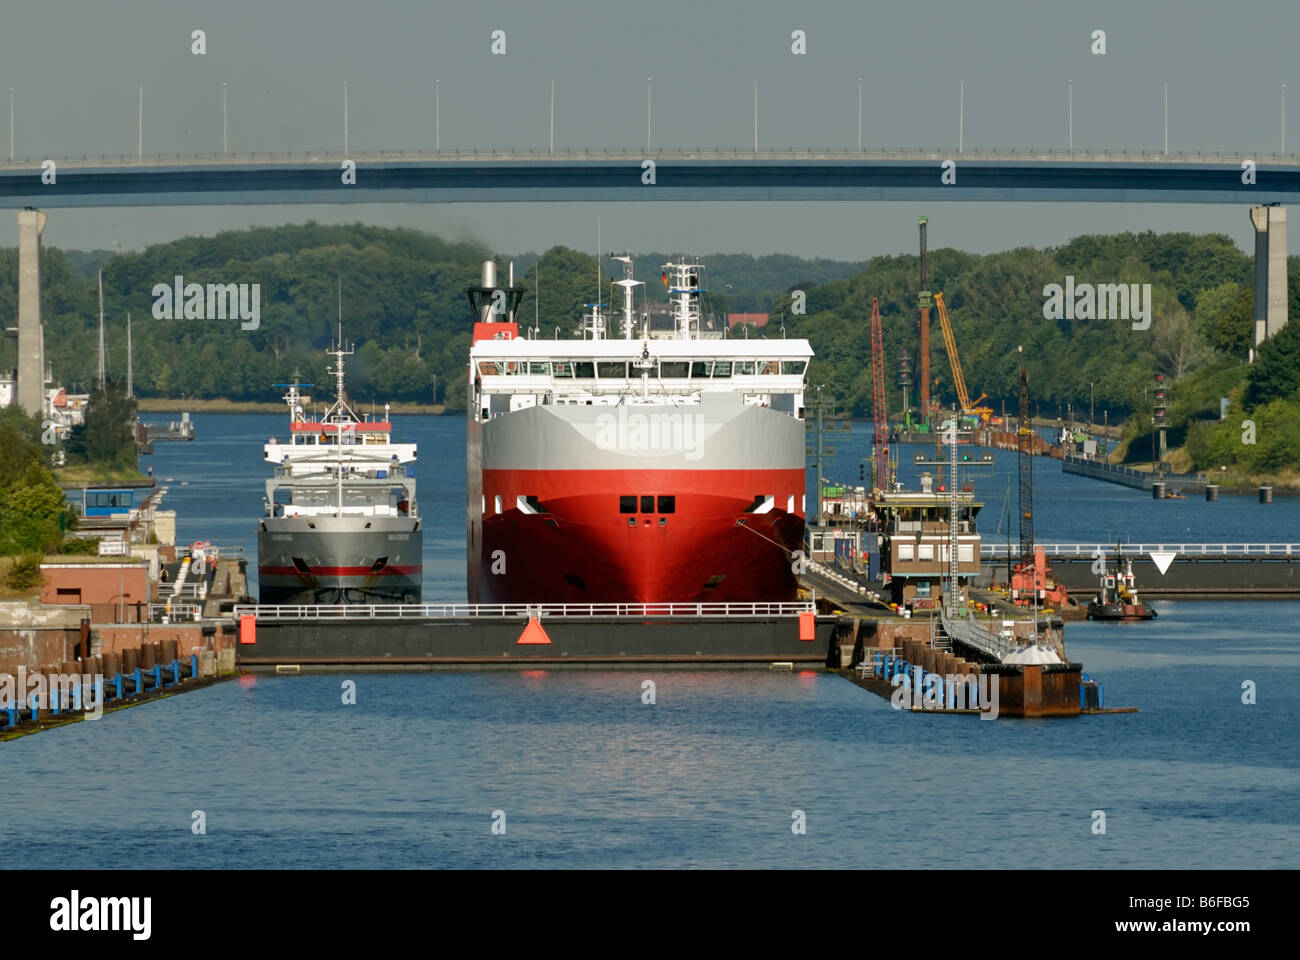 Kiel-Holtenau lock in front of the bridge over the Kiel Canal, Kiel, Germany, Europe - Stock Image